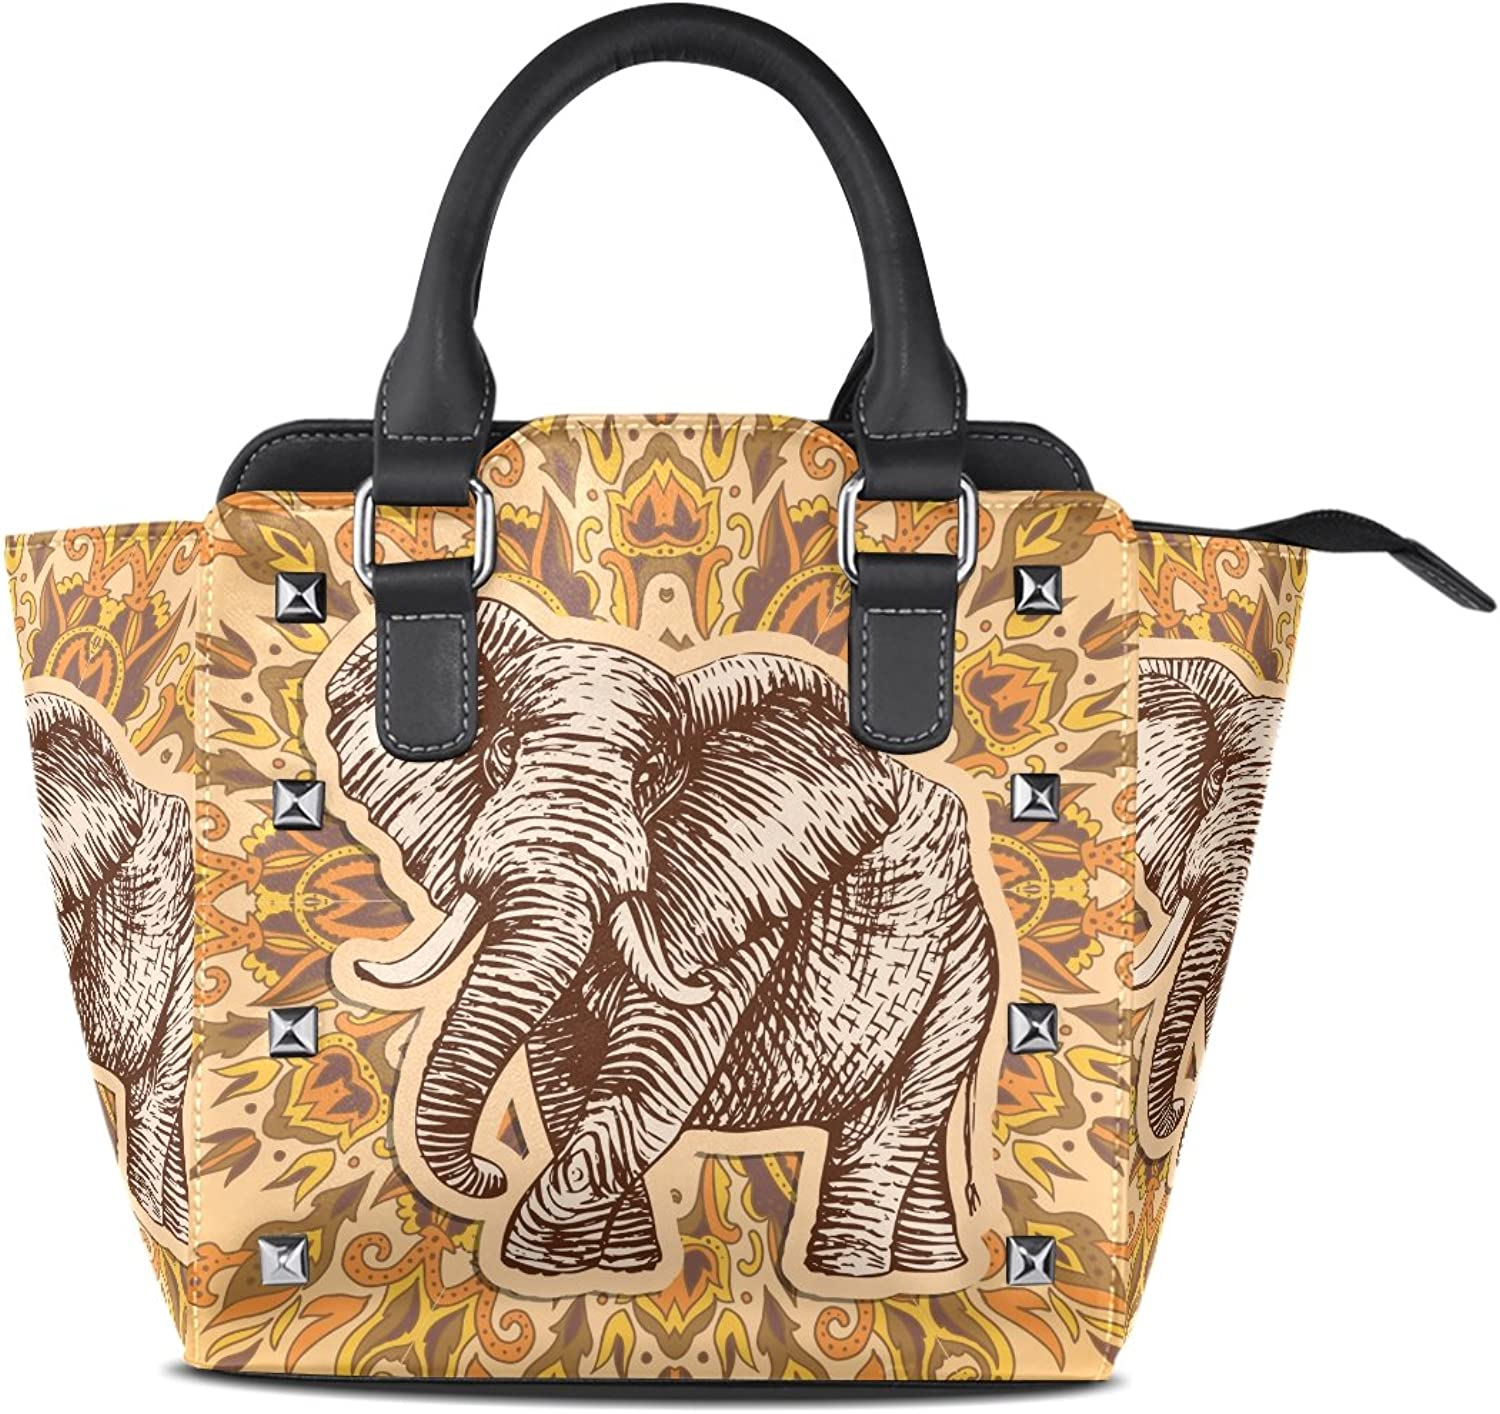 Sunlome Fantasy Elephant Print Handbags Women's PU Leather Top-Handle Shoulder Bags